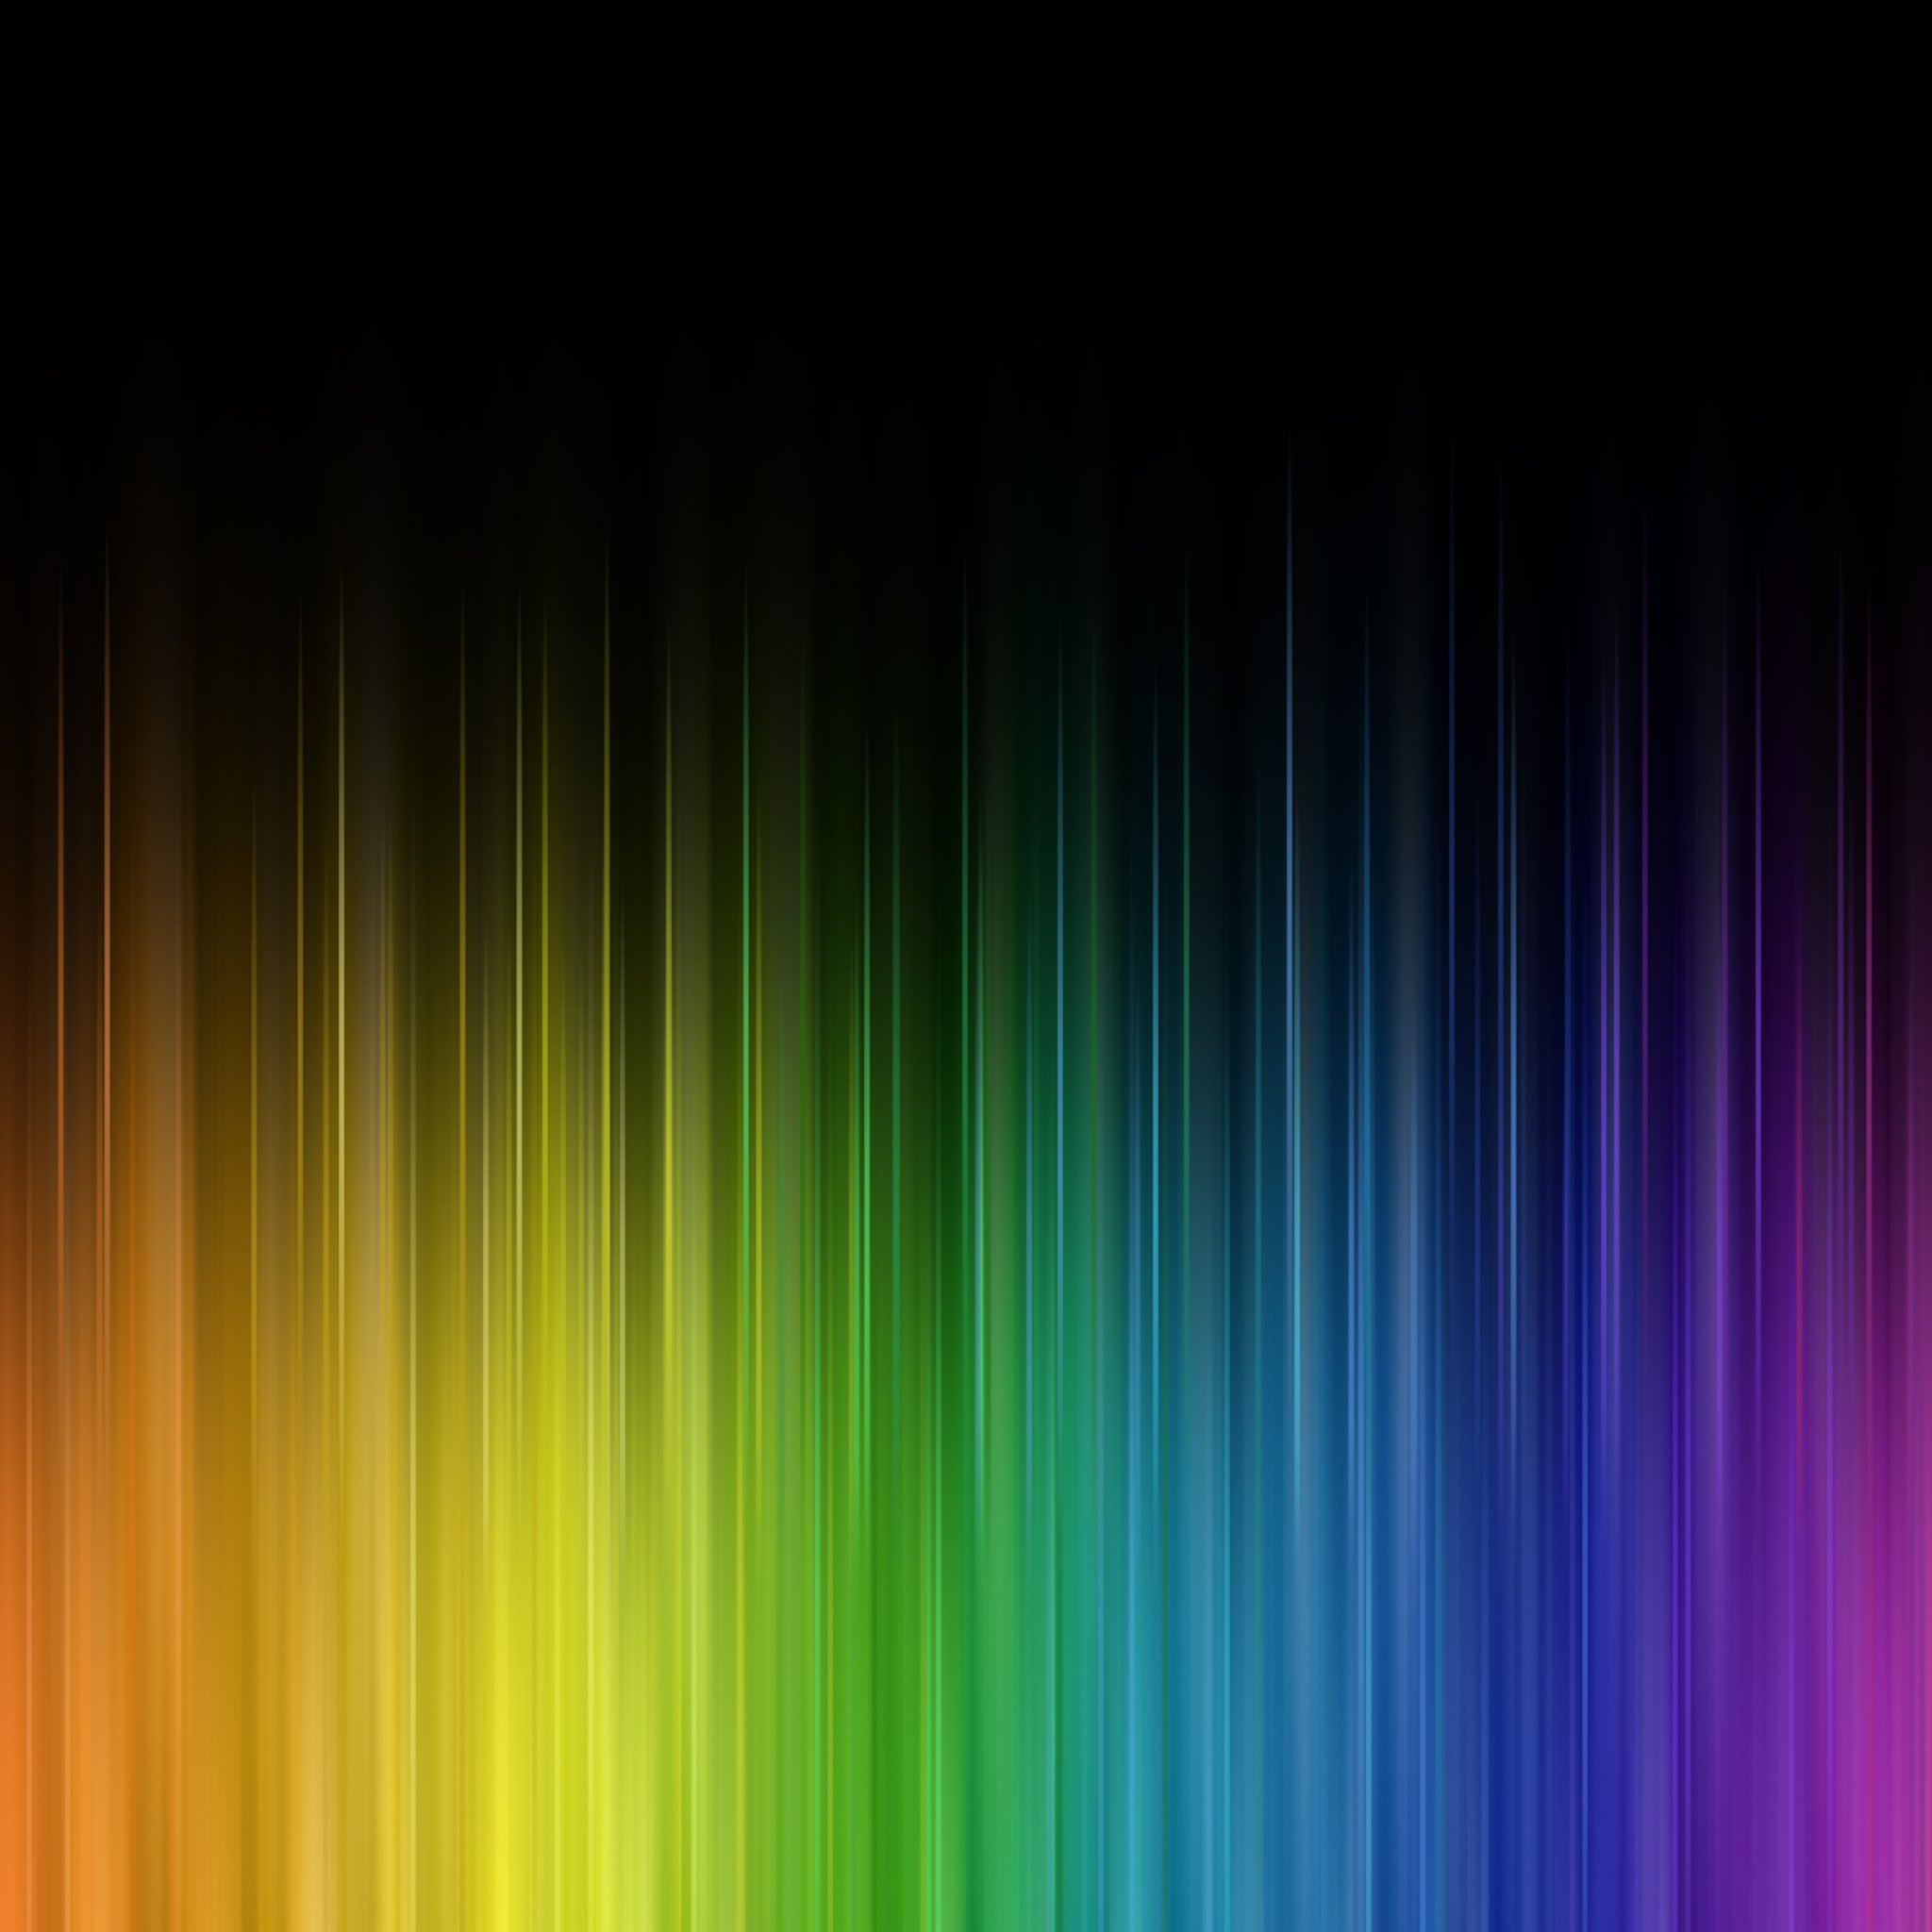 Rainbow Colorful Background Ipad Air Wallpapers Free Download